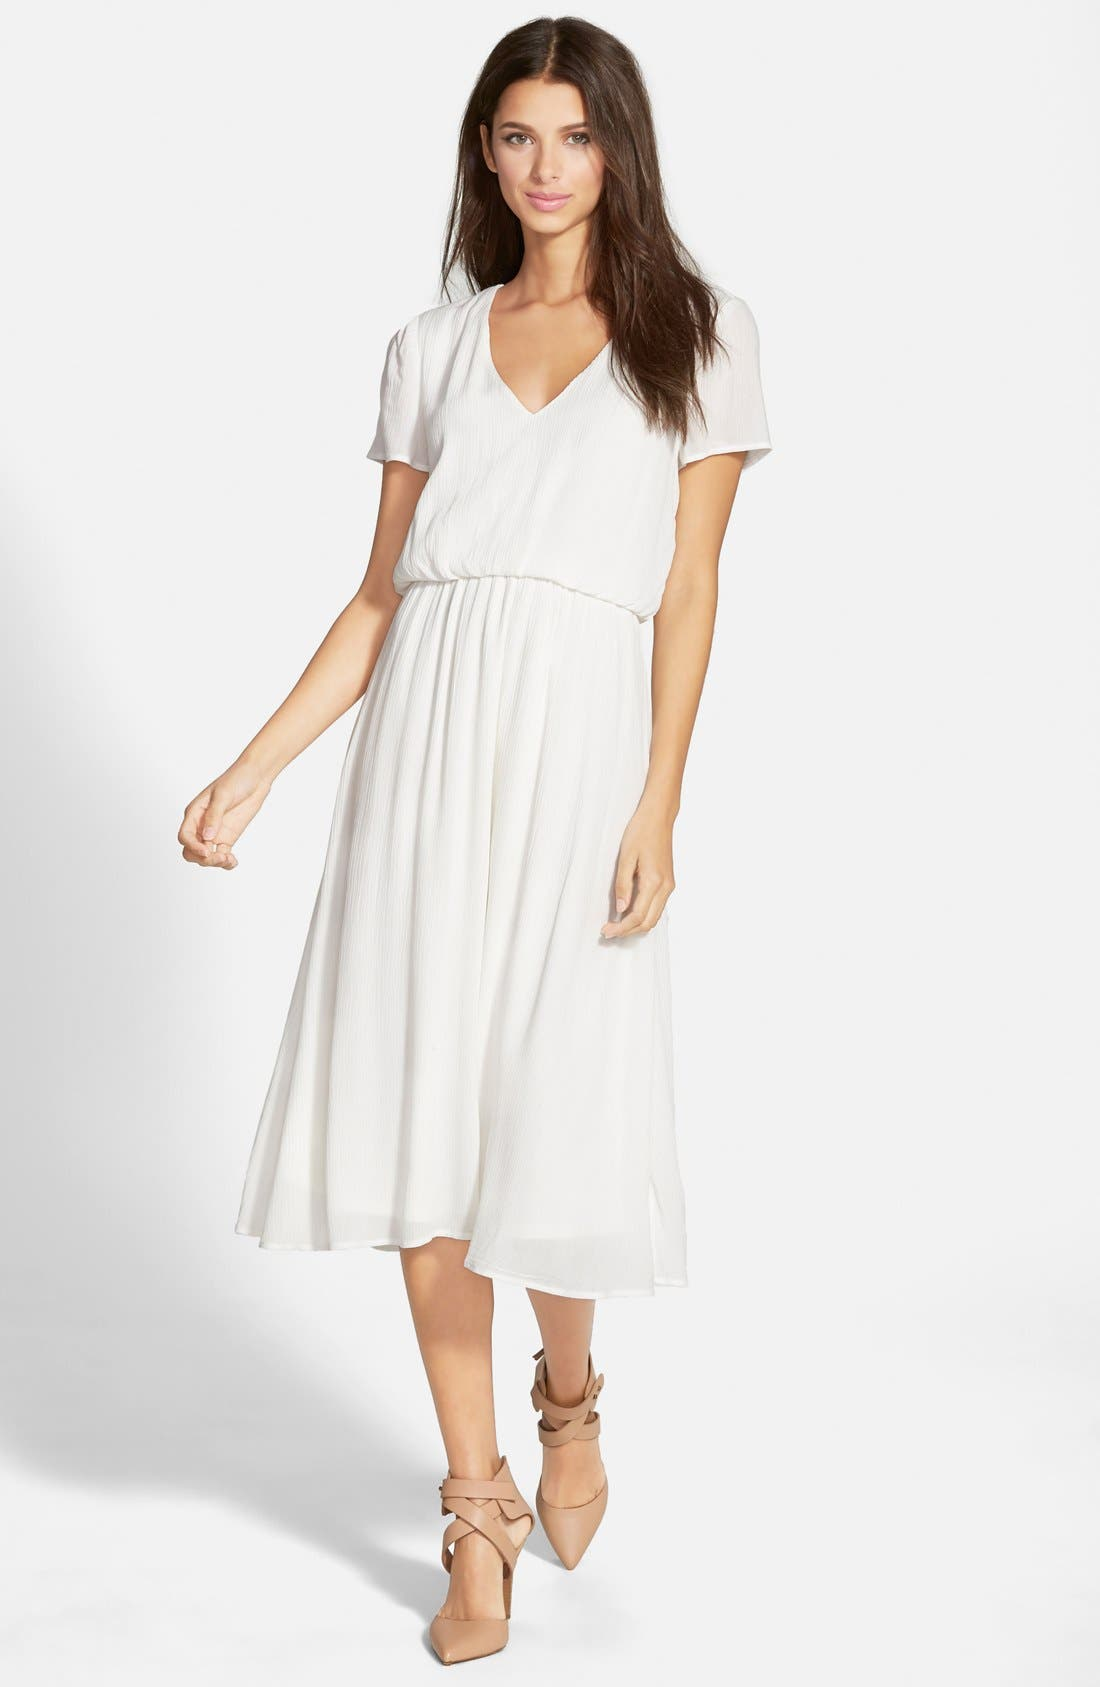 Nordstrom white dresses plus size